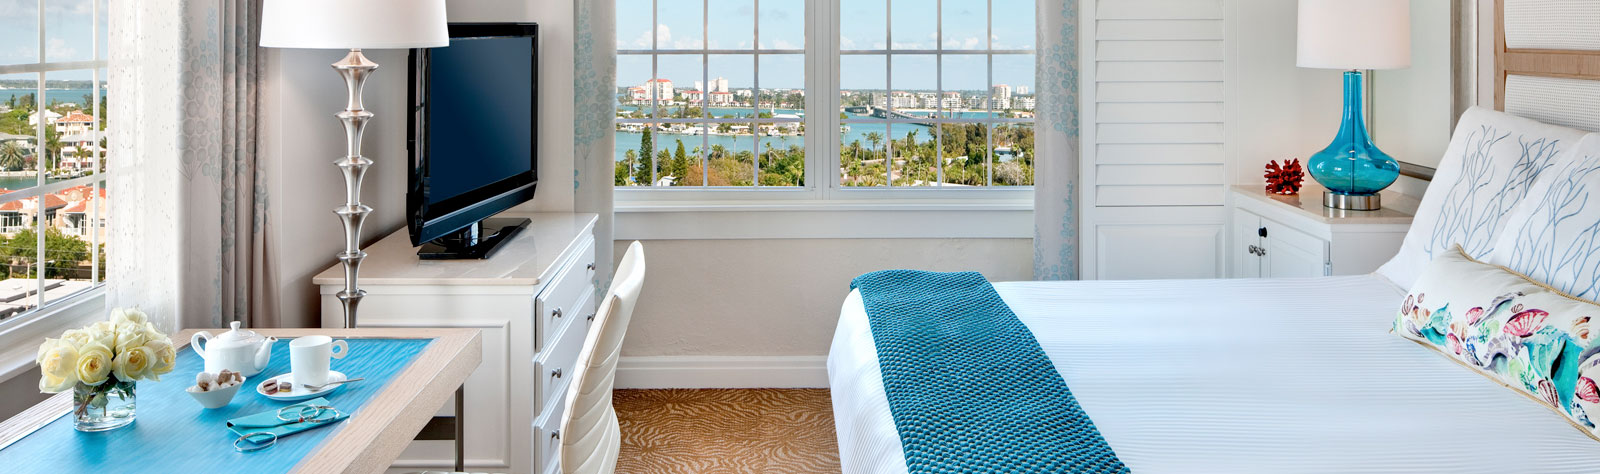 Rooms in The Don CeSar, Florida